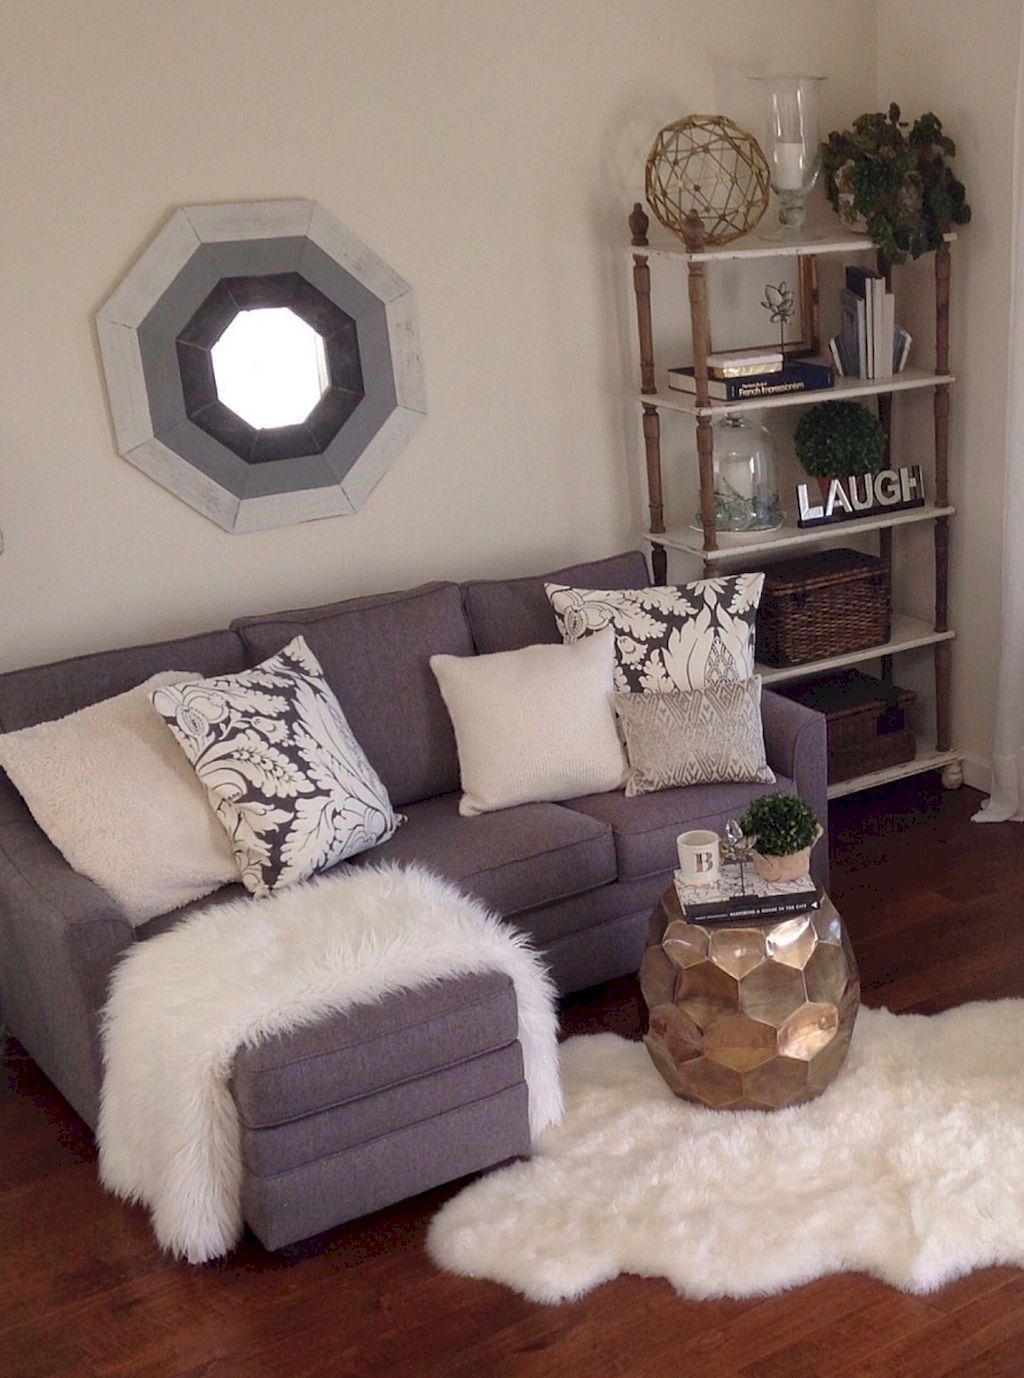 Awesome 85 Couple Apartment Decorating Ideas On A Budget Apartment Couple Dec Small Apartment Decorating Small Apartment Living Room Farm House Living Room